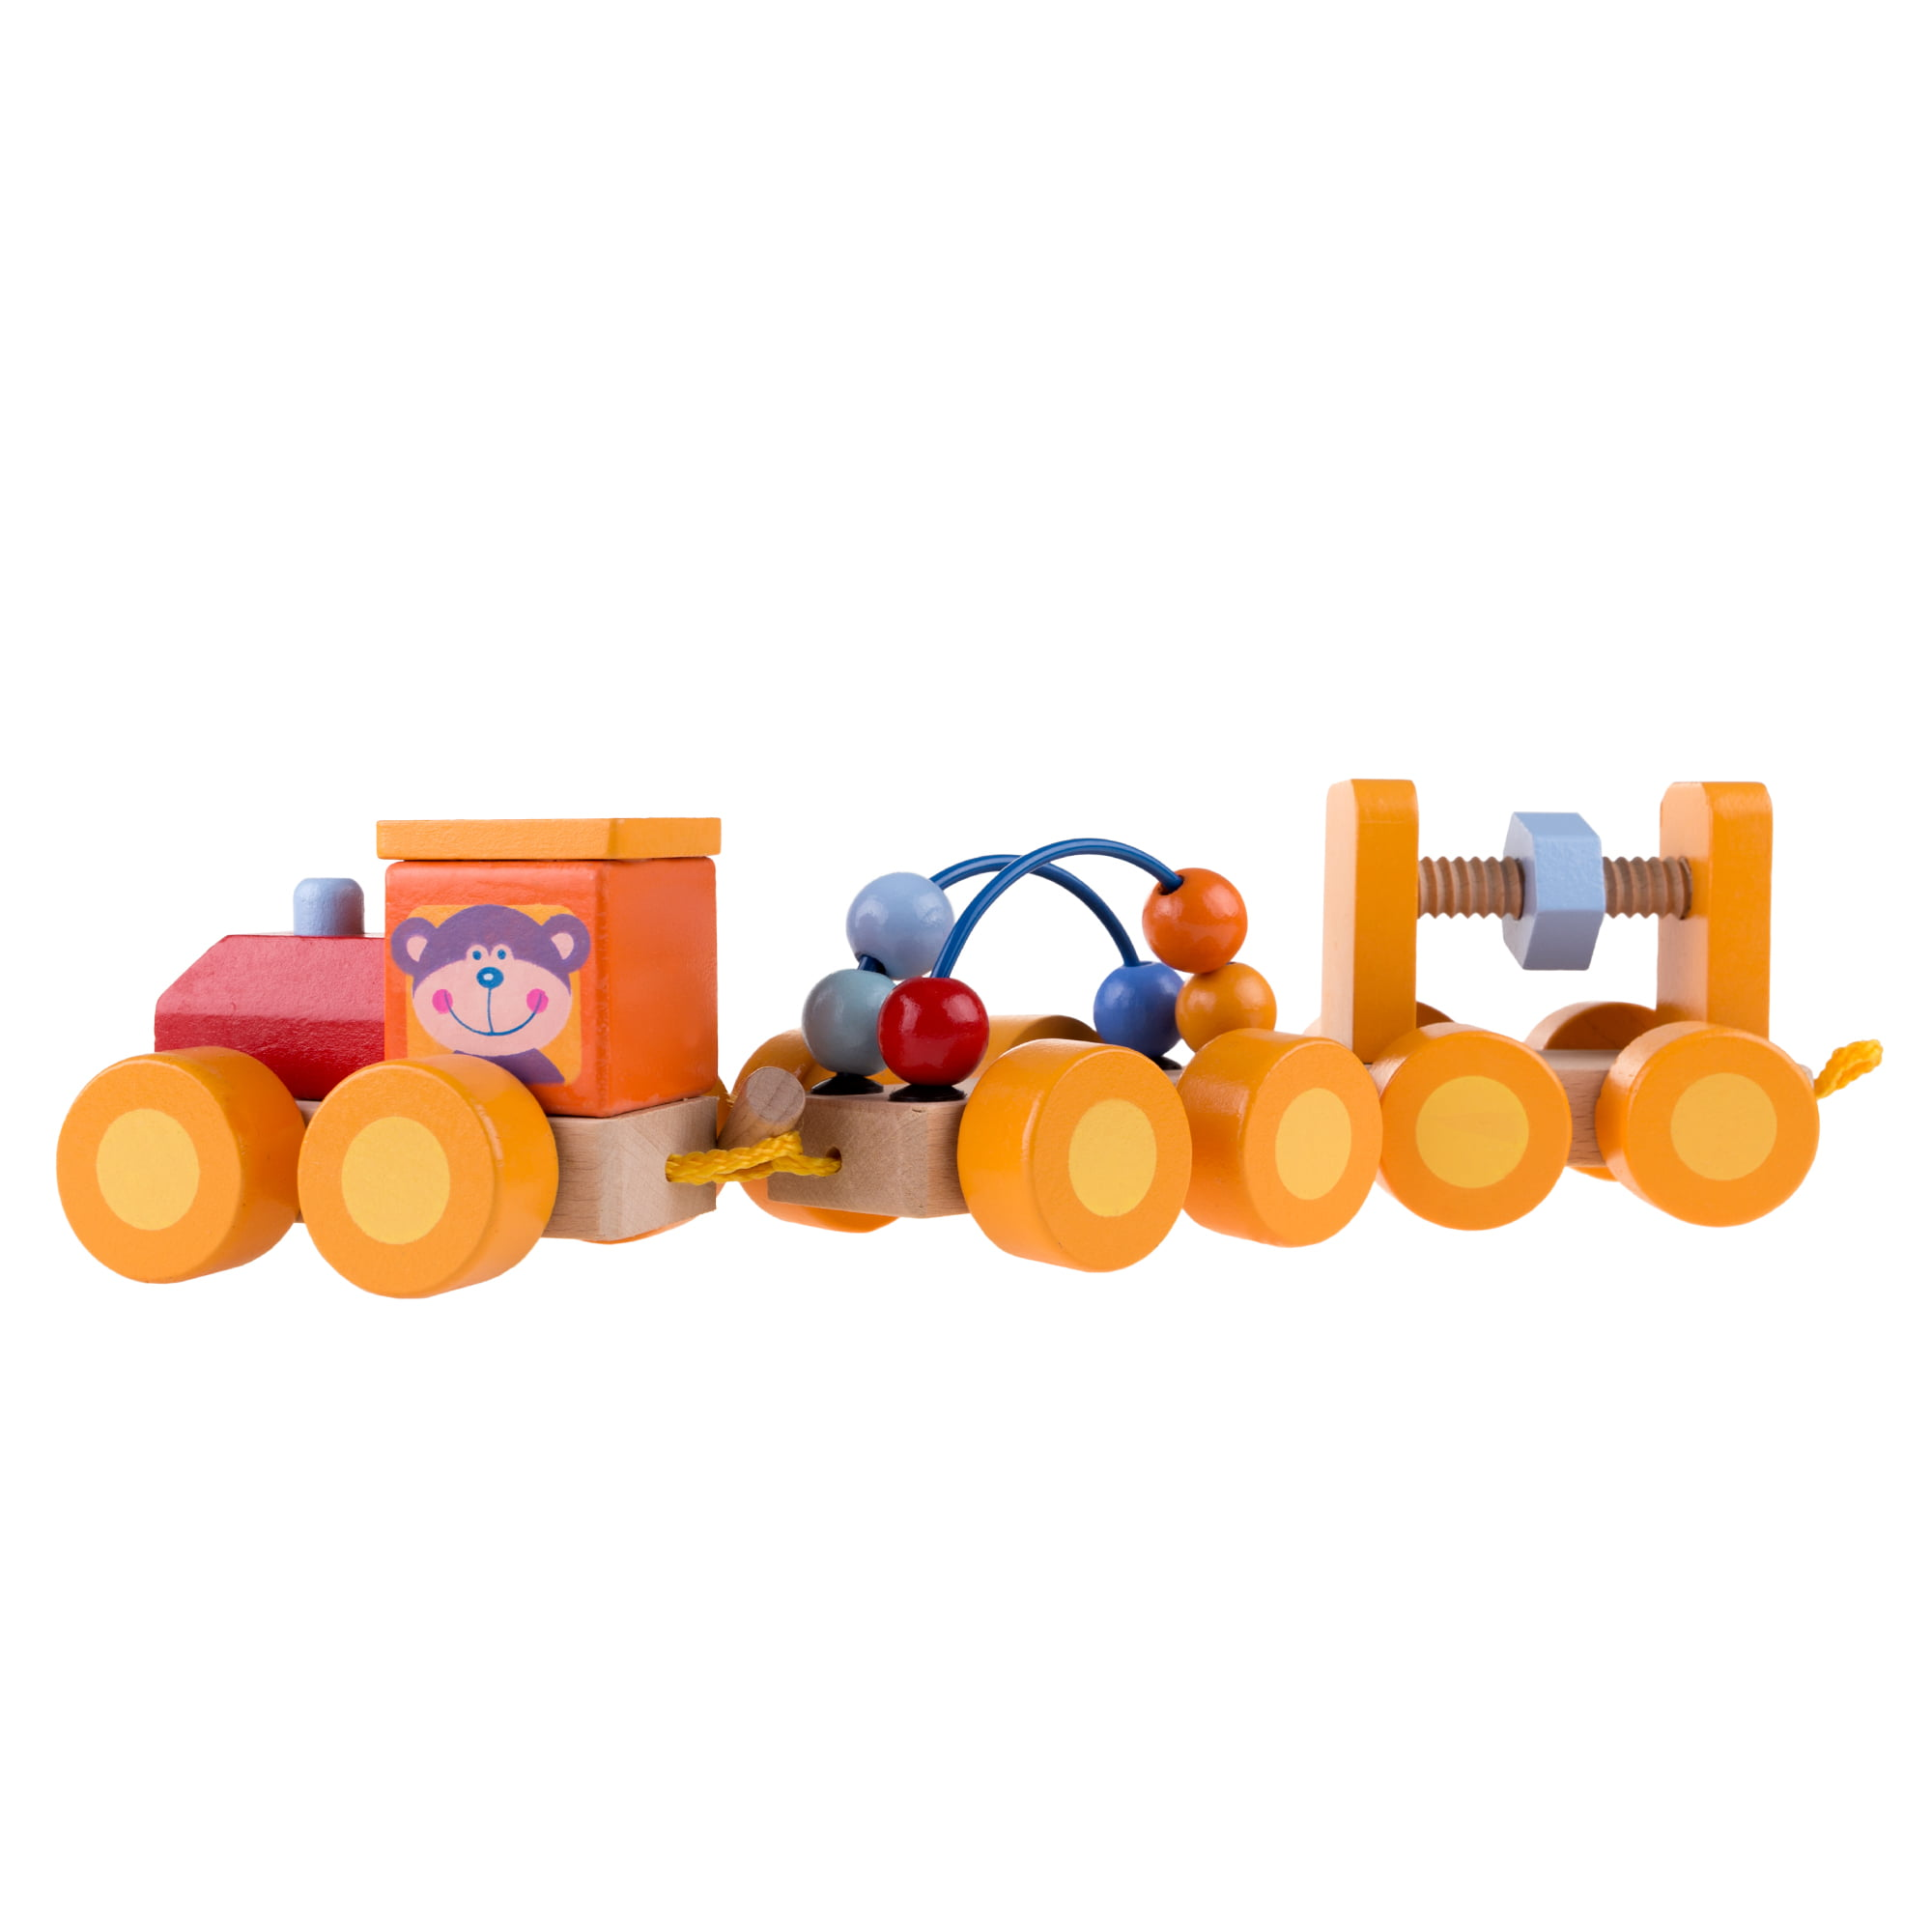 Classic Wooden Toy, Interactive Learning Train Set with Bead Maze and Screw Block Train... by Trademark Global